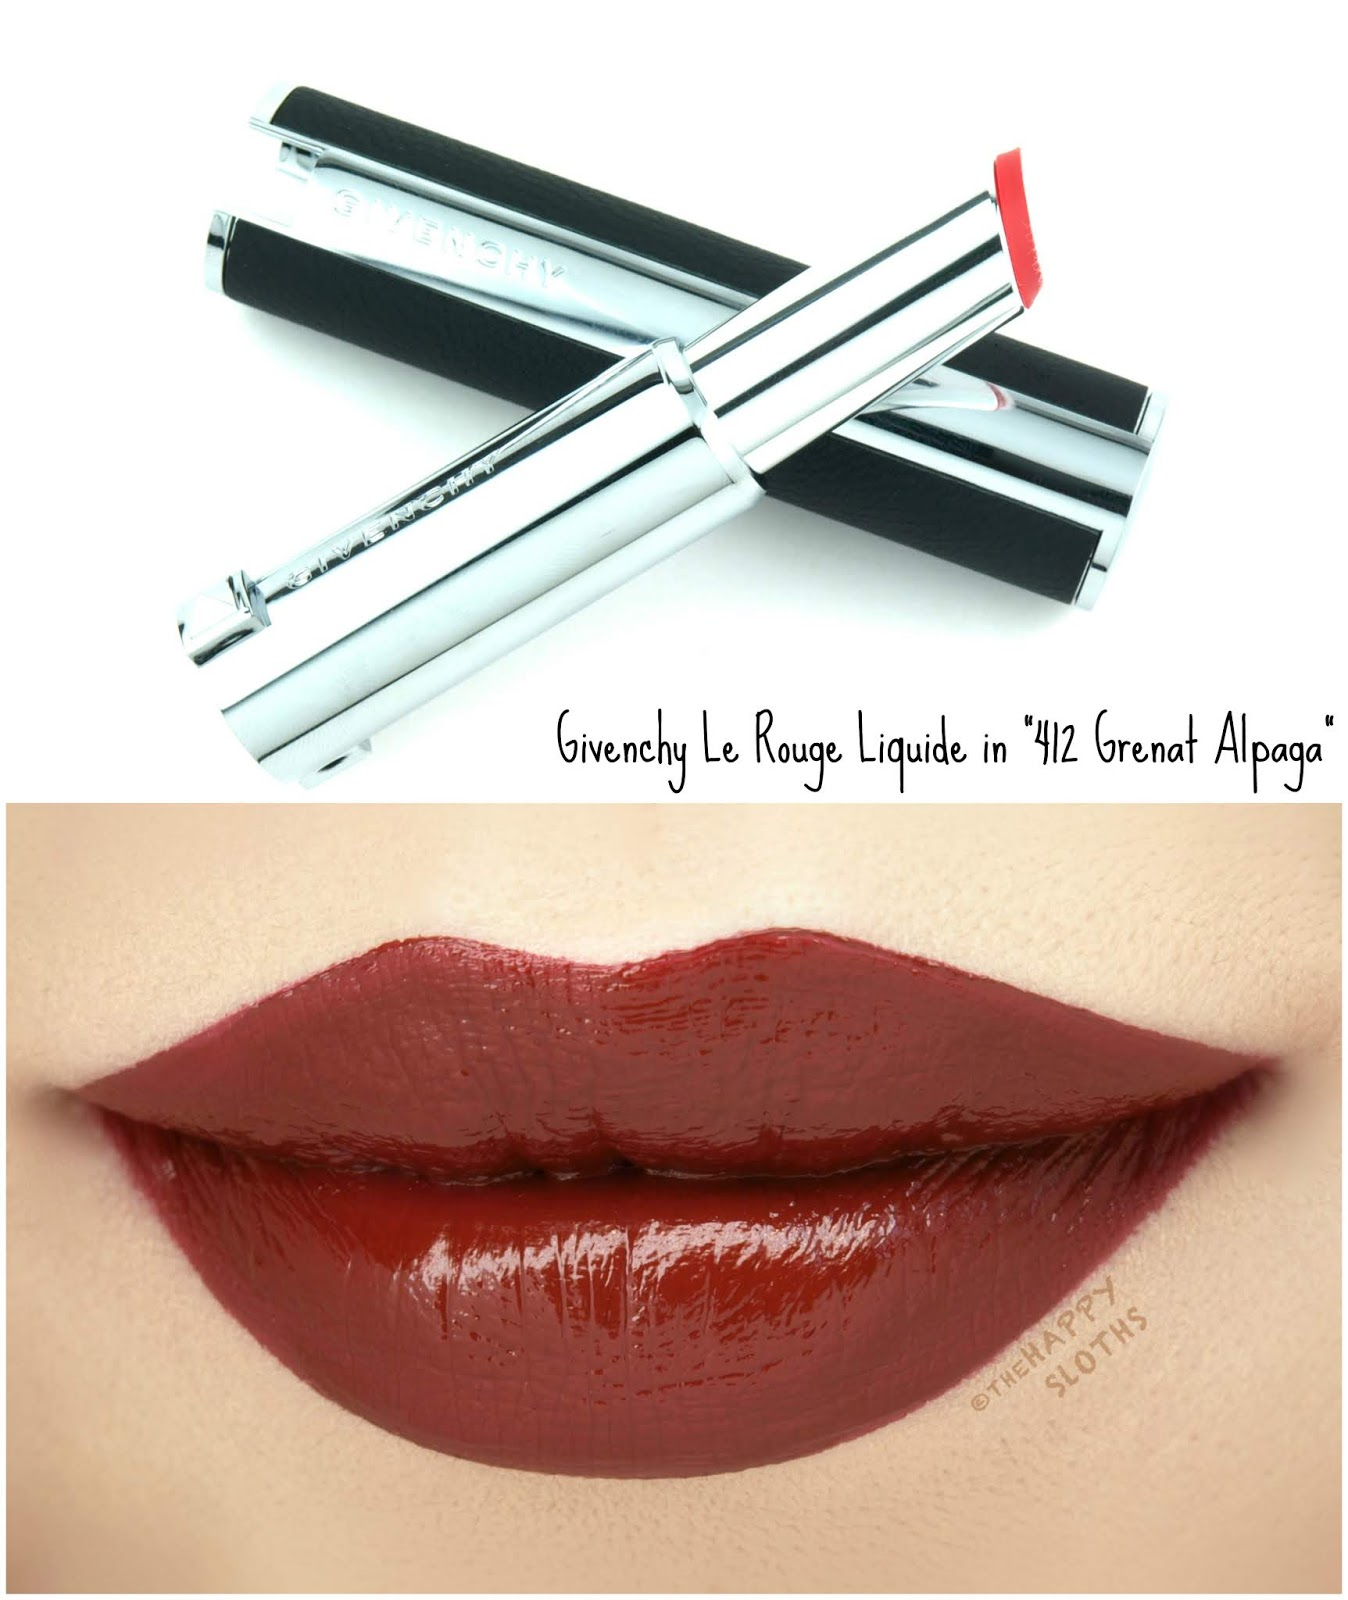 "Givenchy | Le Rouge Liquide in ""412 Grenat Alpaga"": Review and Swatches"